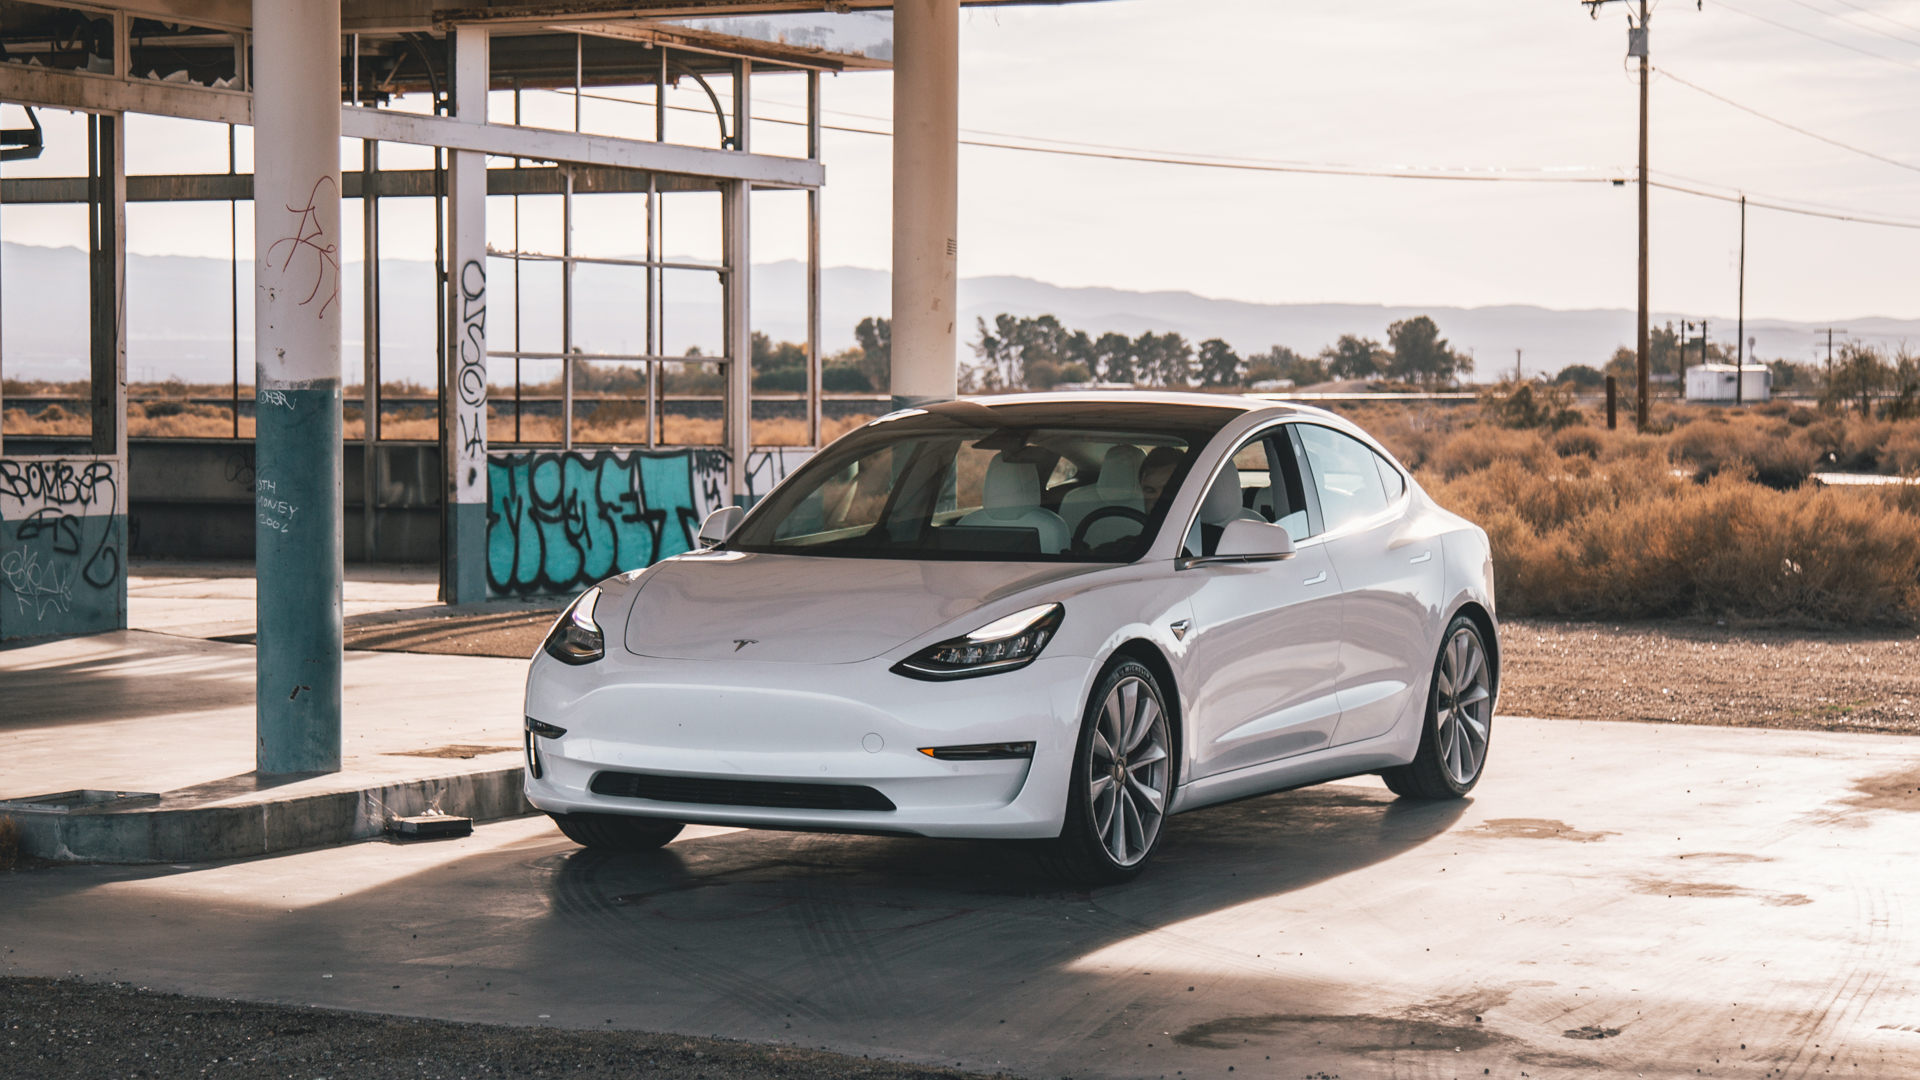 Tesla V3 Supercharging: 250kW charge stations announced